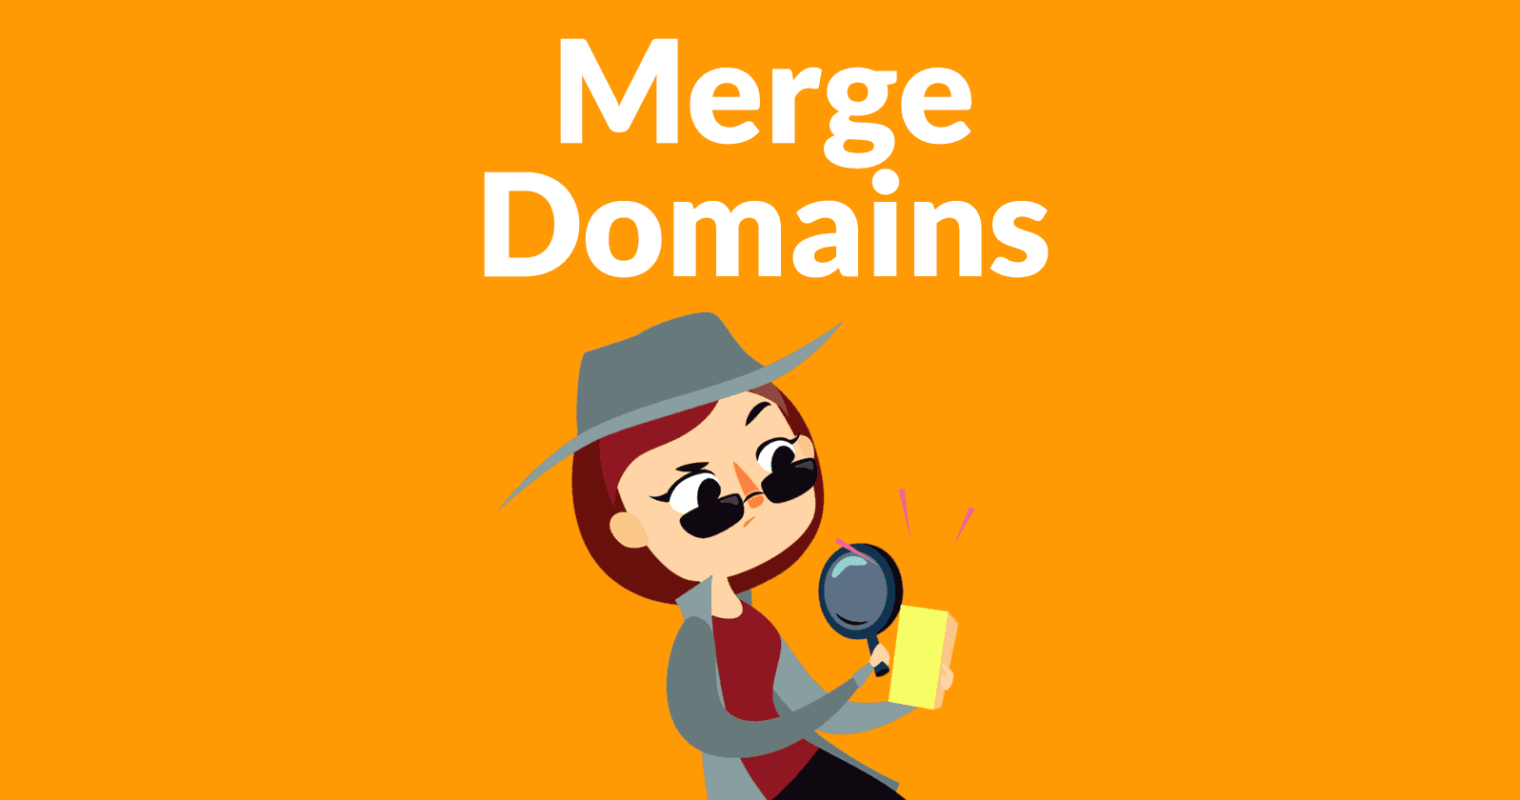 How to Handle SSL Certificates When Merging Domains?